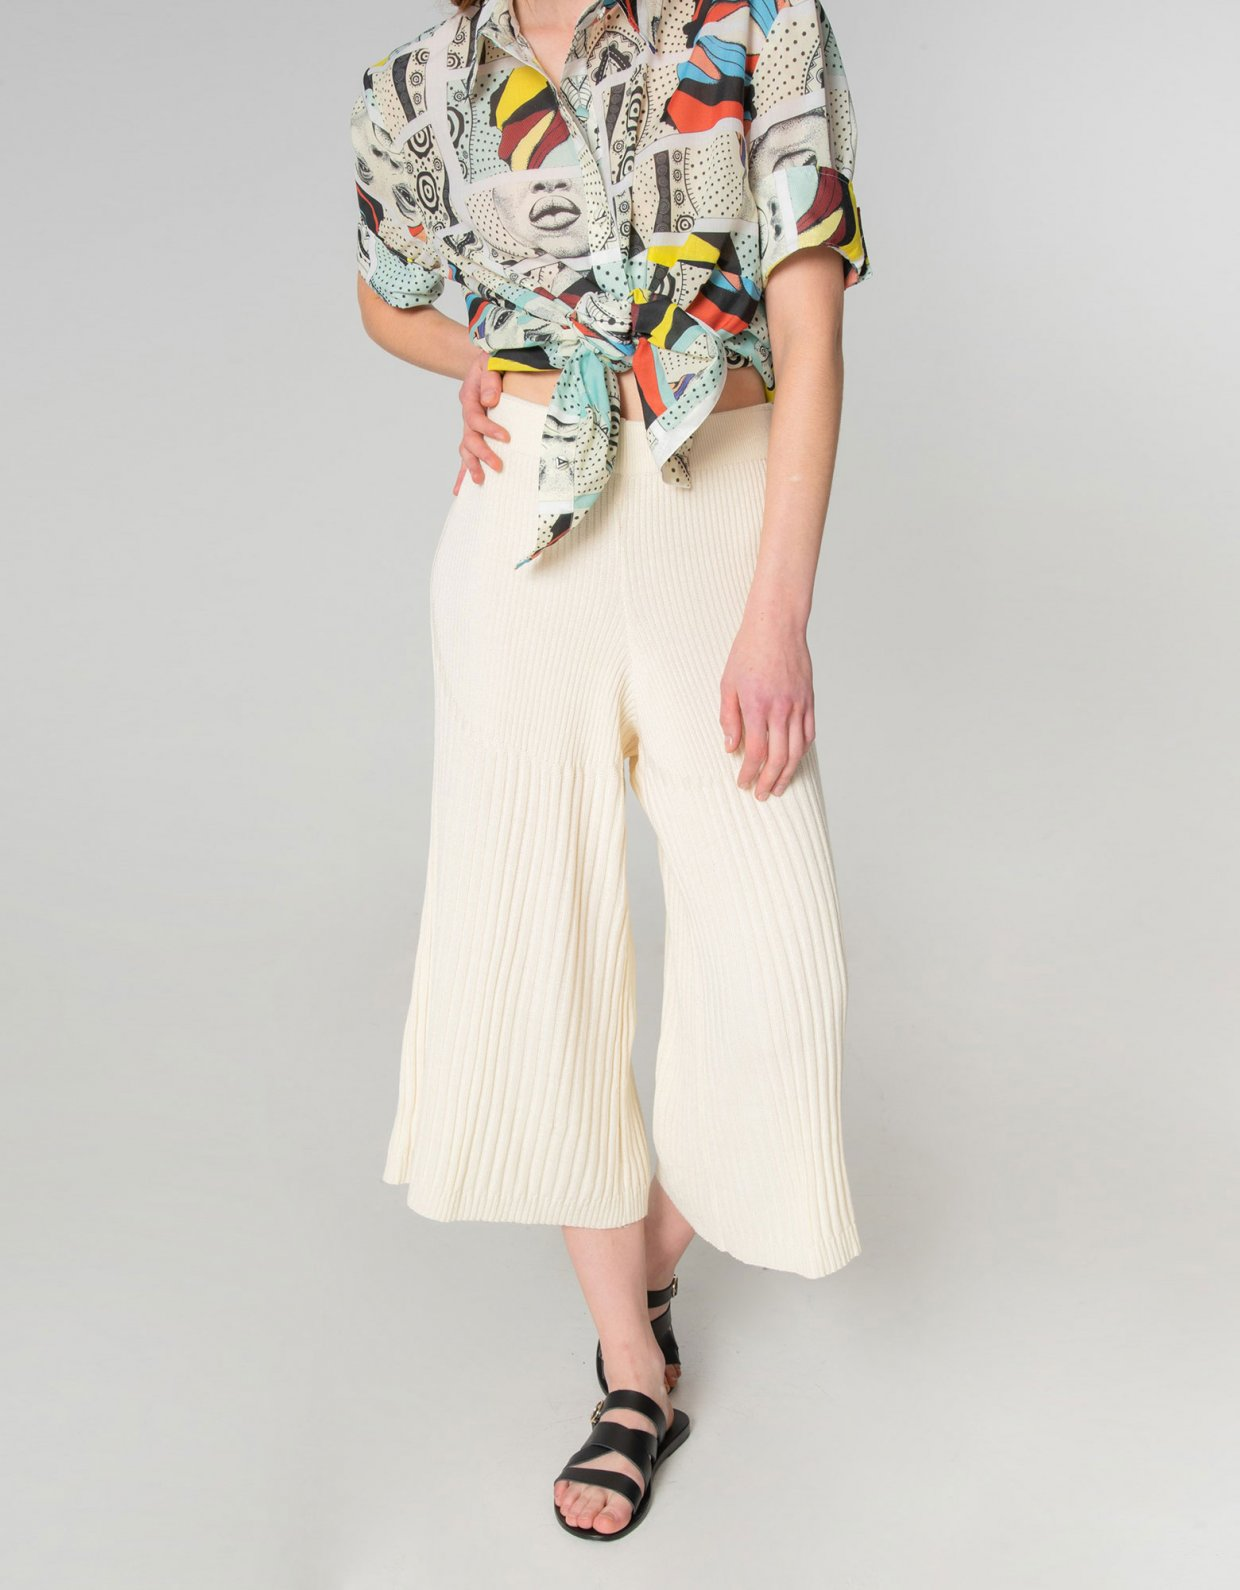 Nadia Rapti Tribes of knit pants off white